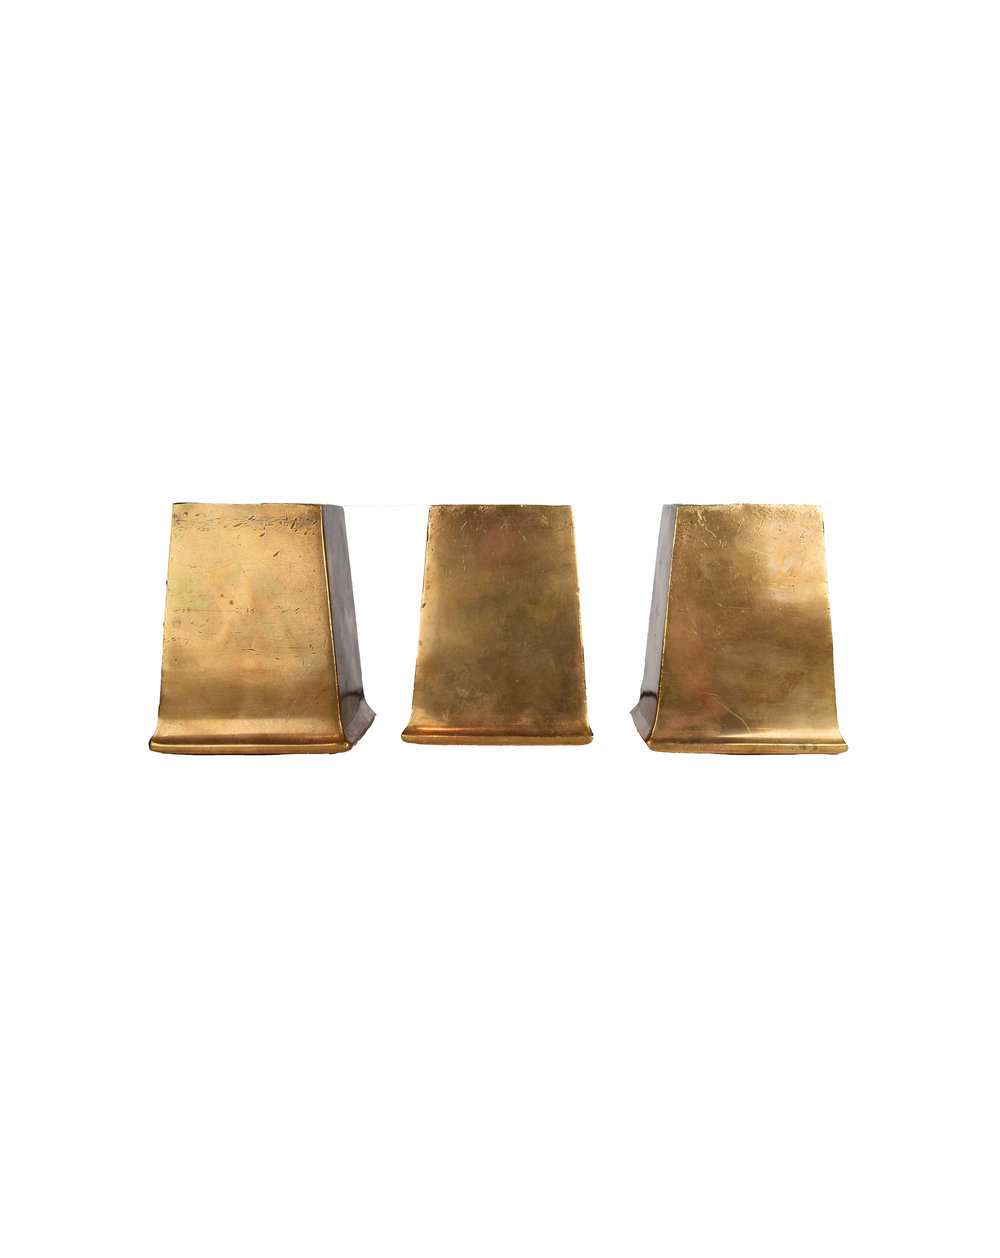 BRONZE SQUARE FEET AA# H20112   1 set of 6 available $225.00 for set